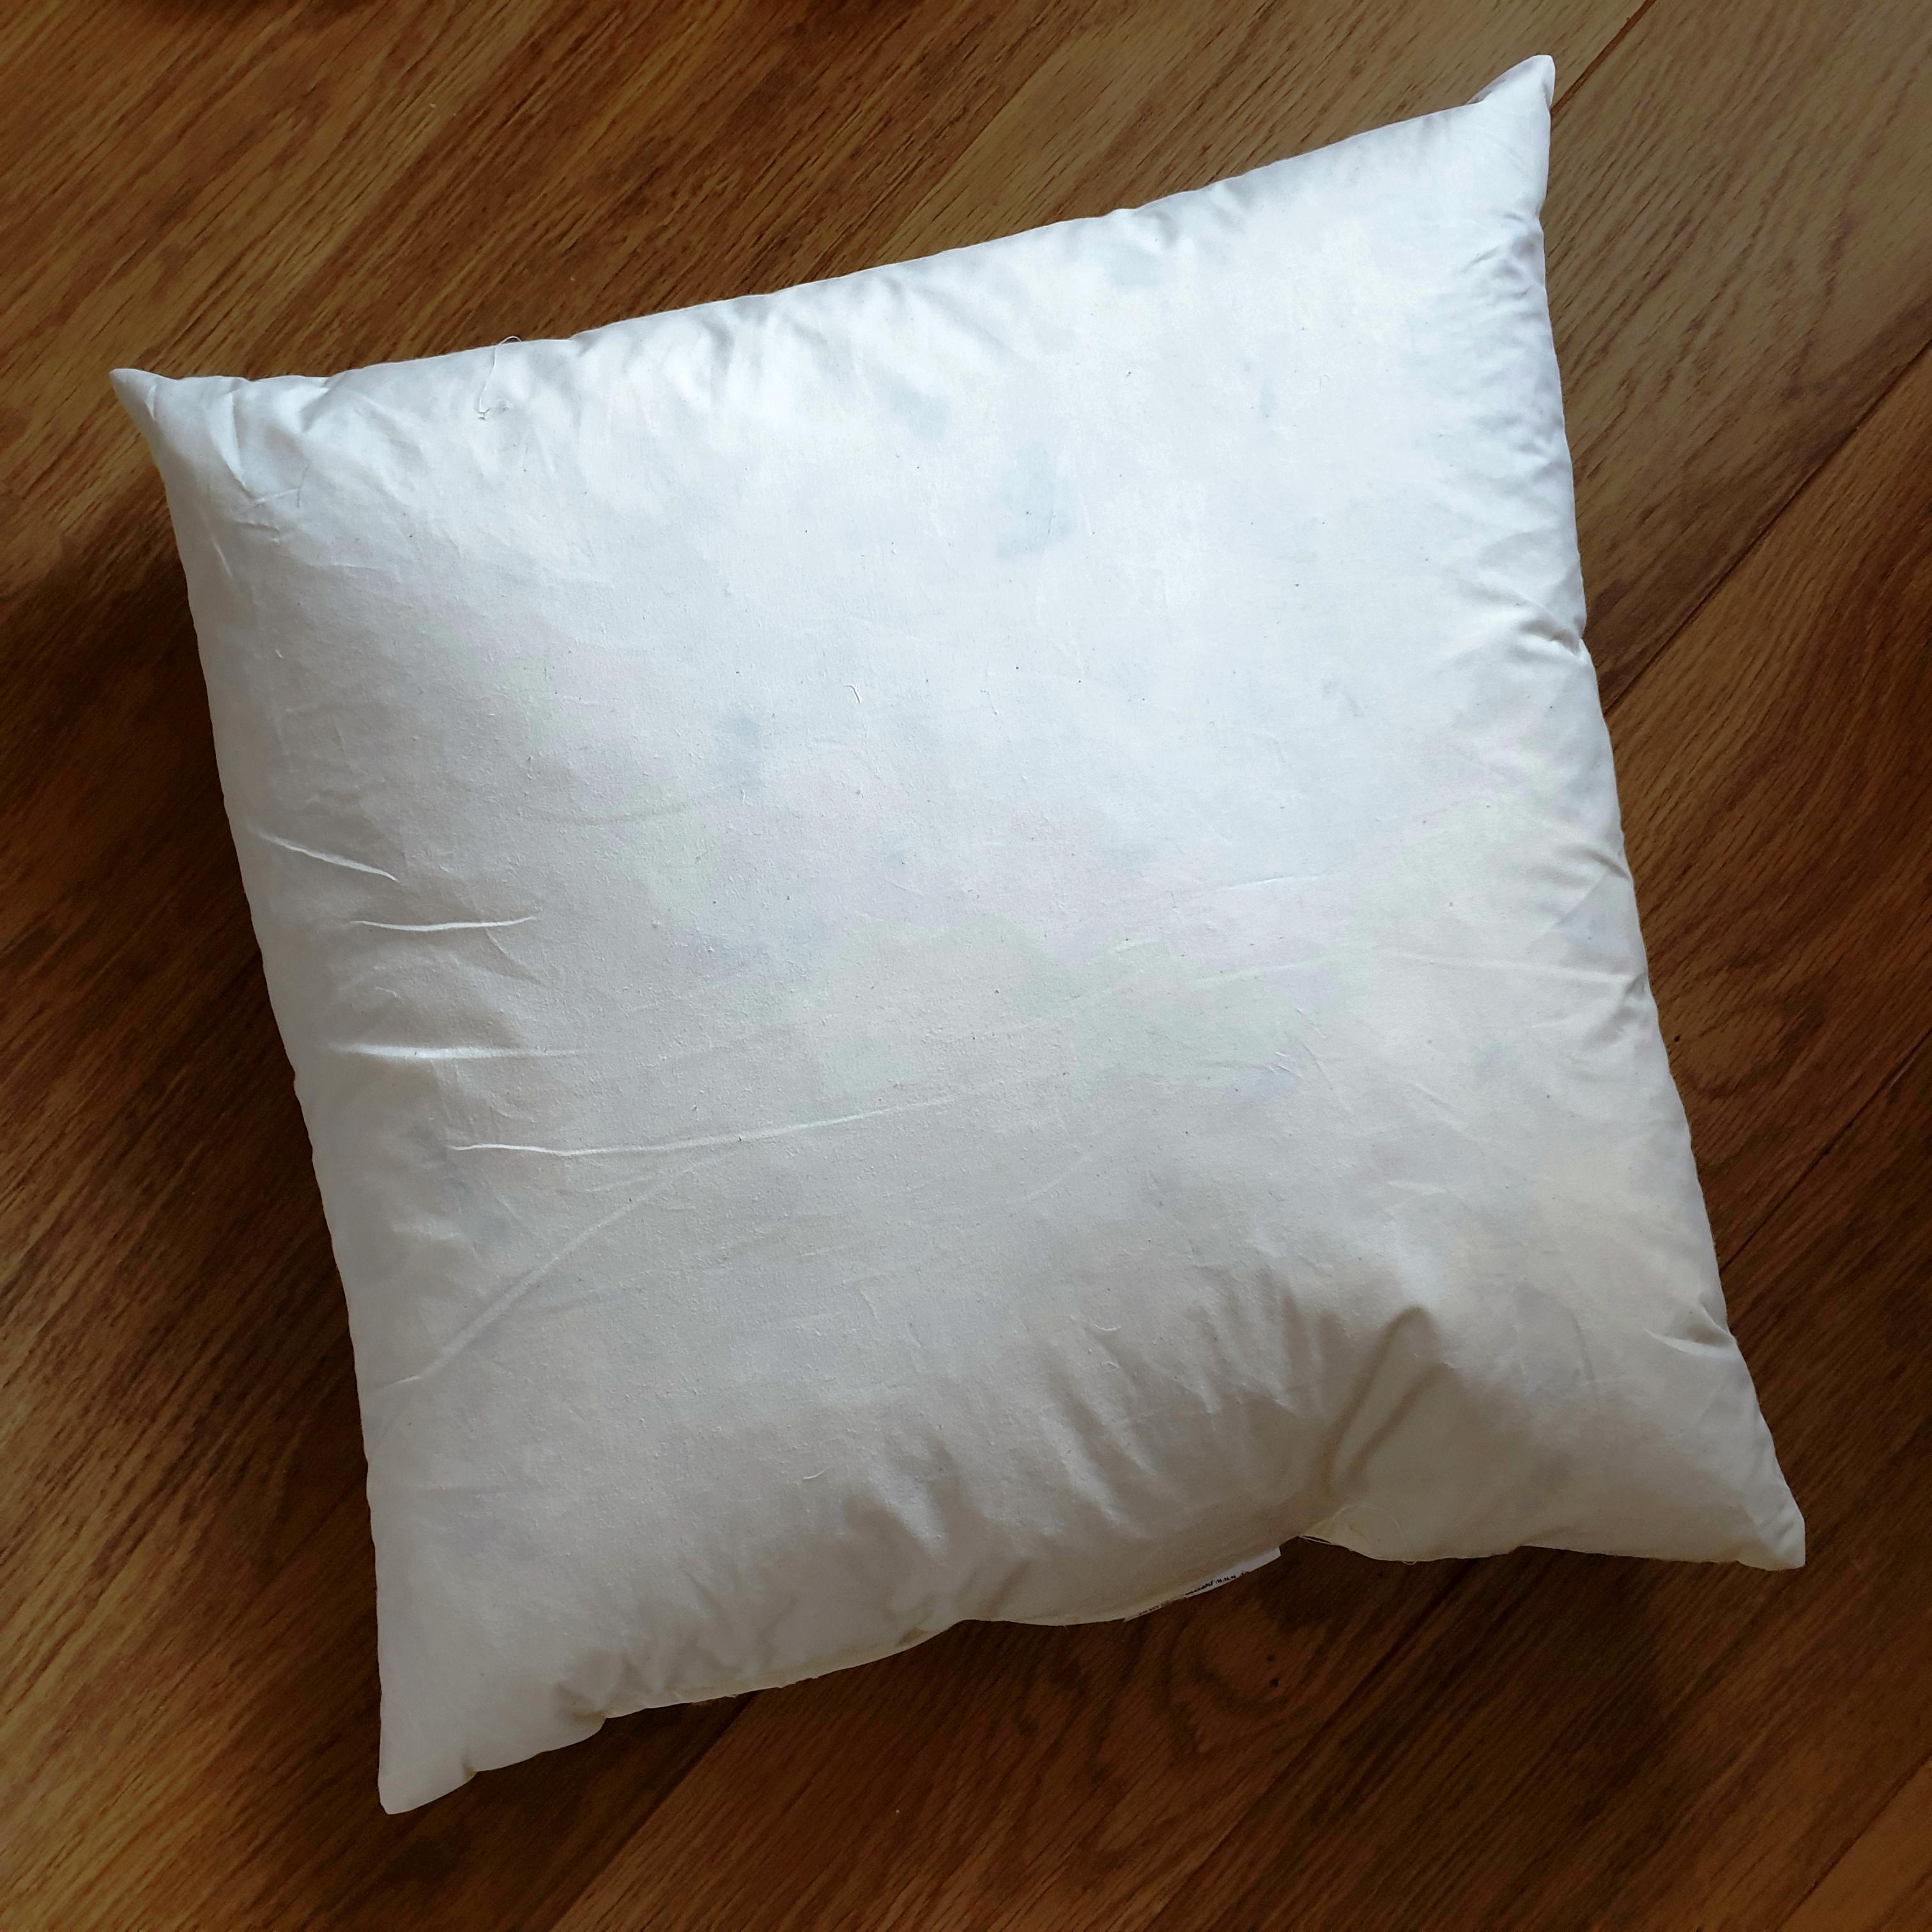 55cm cushion inner pad generously filled with 85% white duck feathers and 15% duck down in ecru cream 100% cotton outer cover.